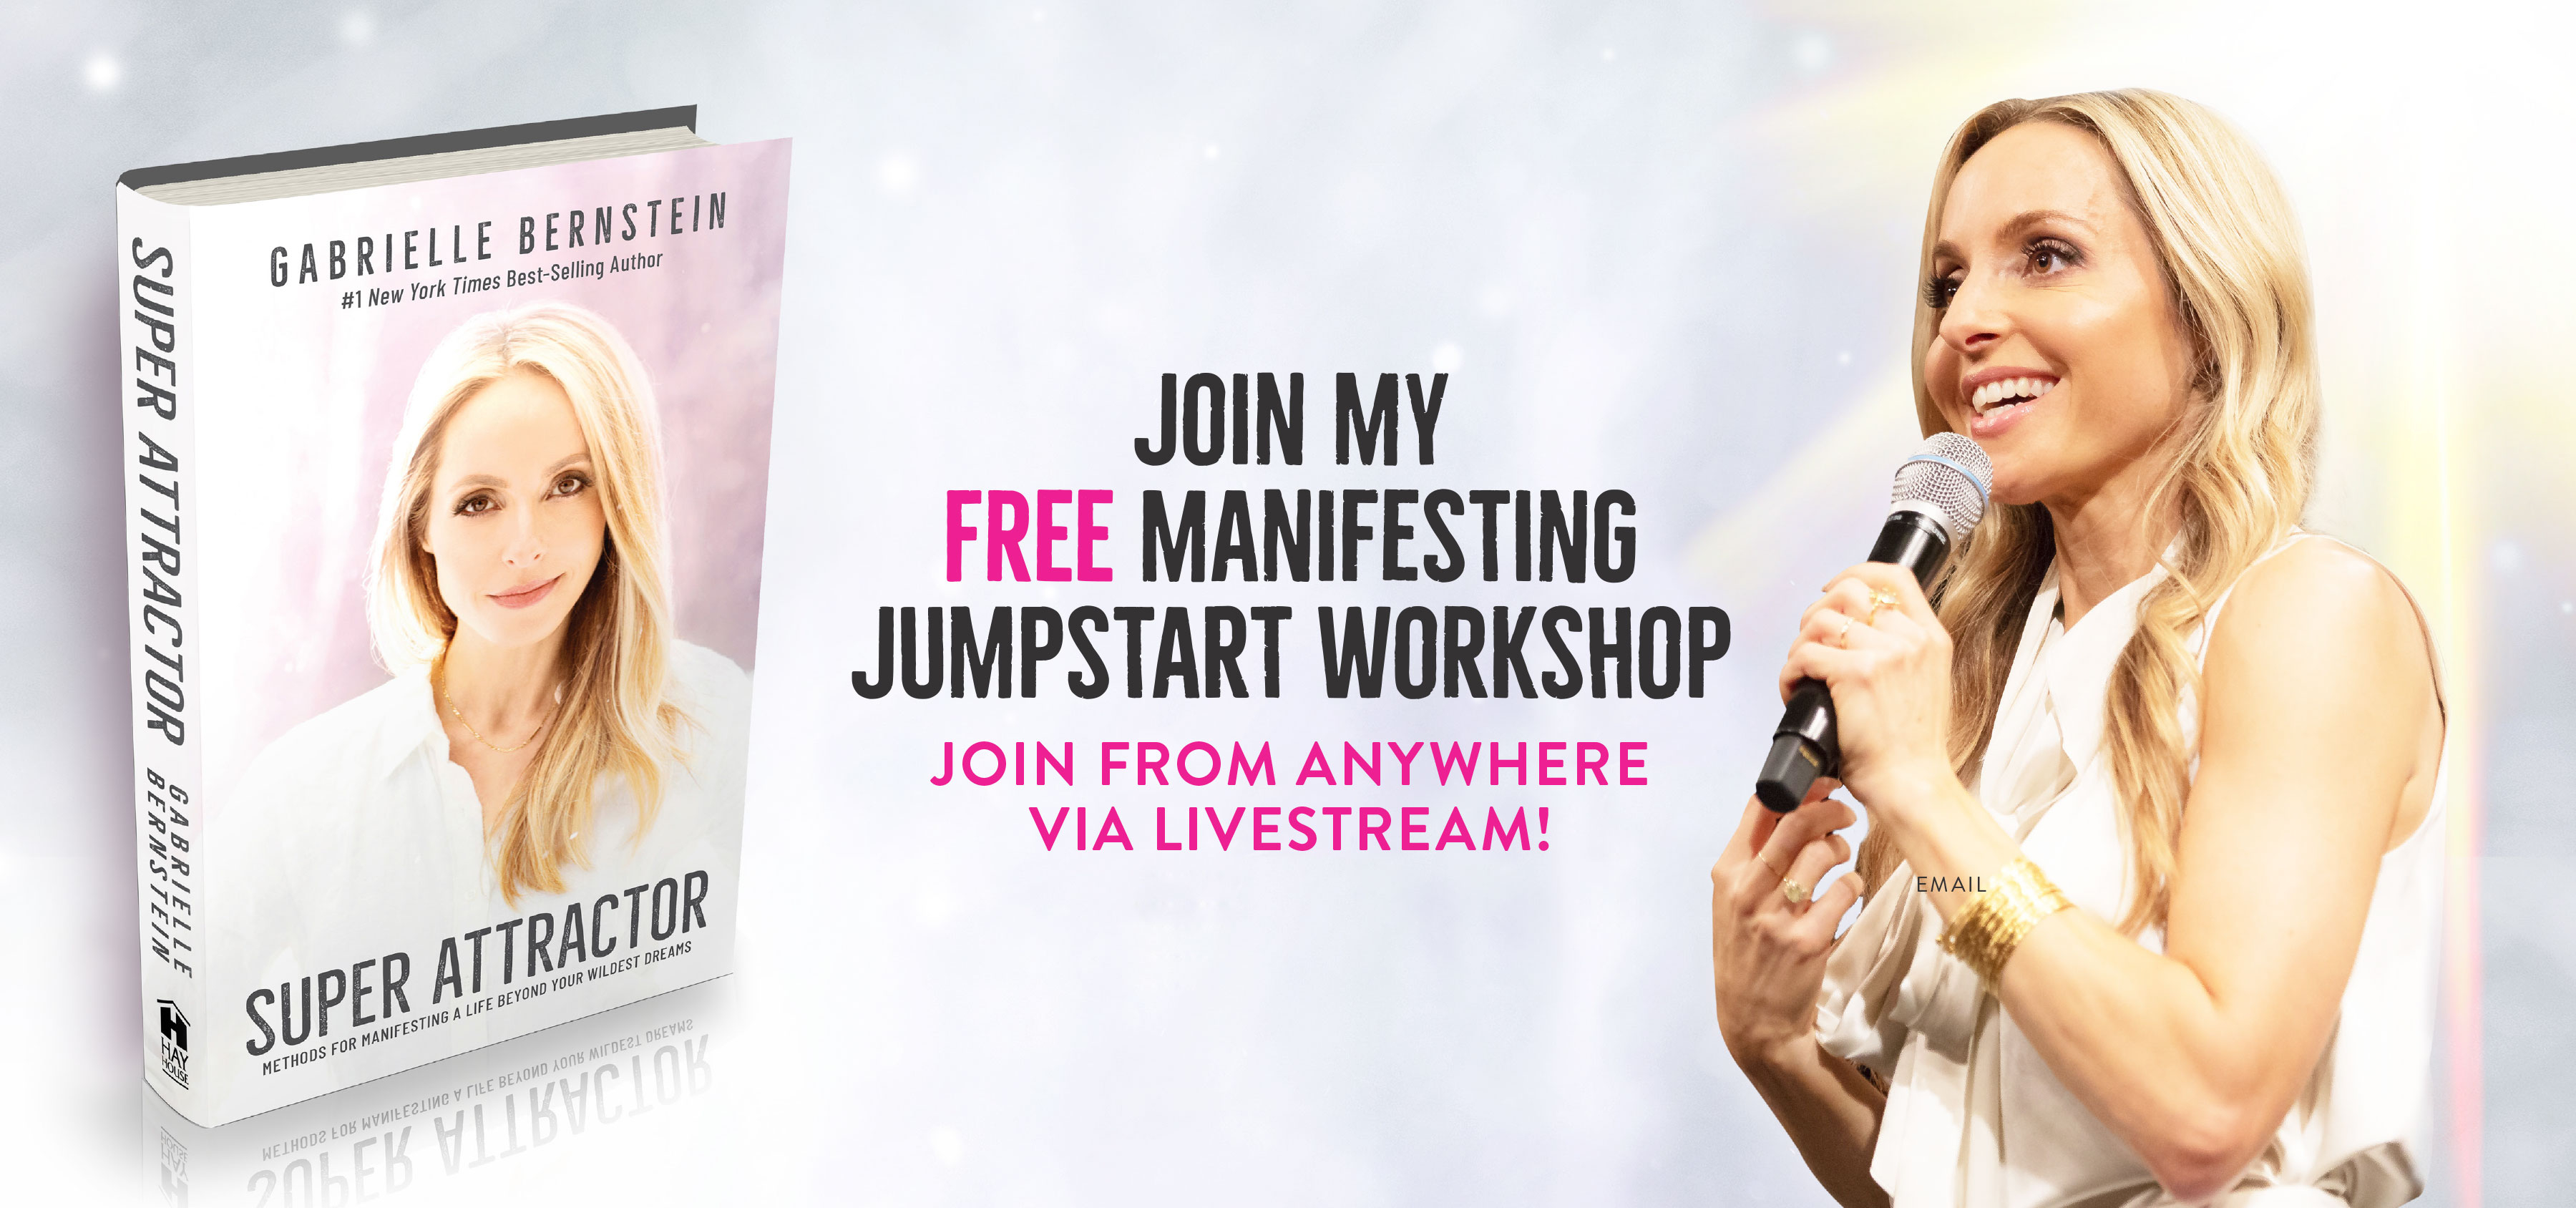 Manifesting Jumpstart Workshop - Livestream - Free ticket when you order Super Attractor by Gabby Bernstein